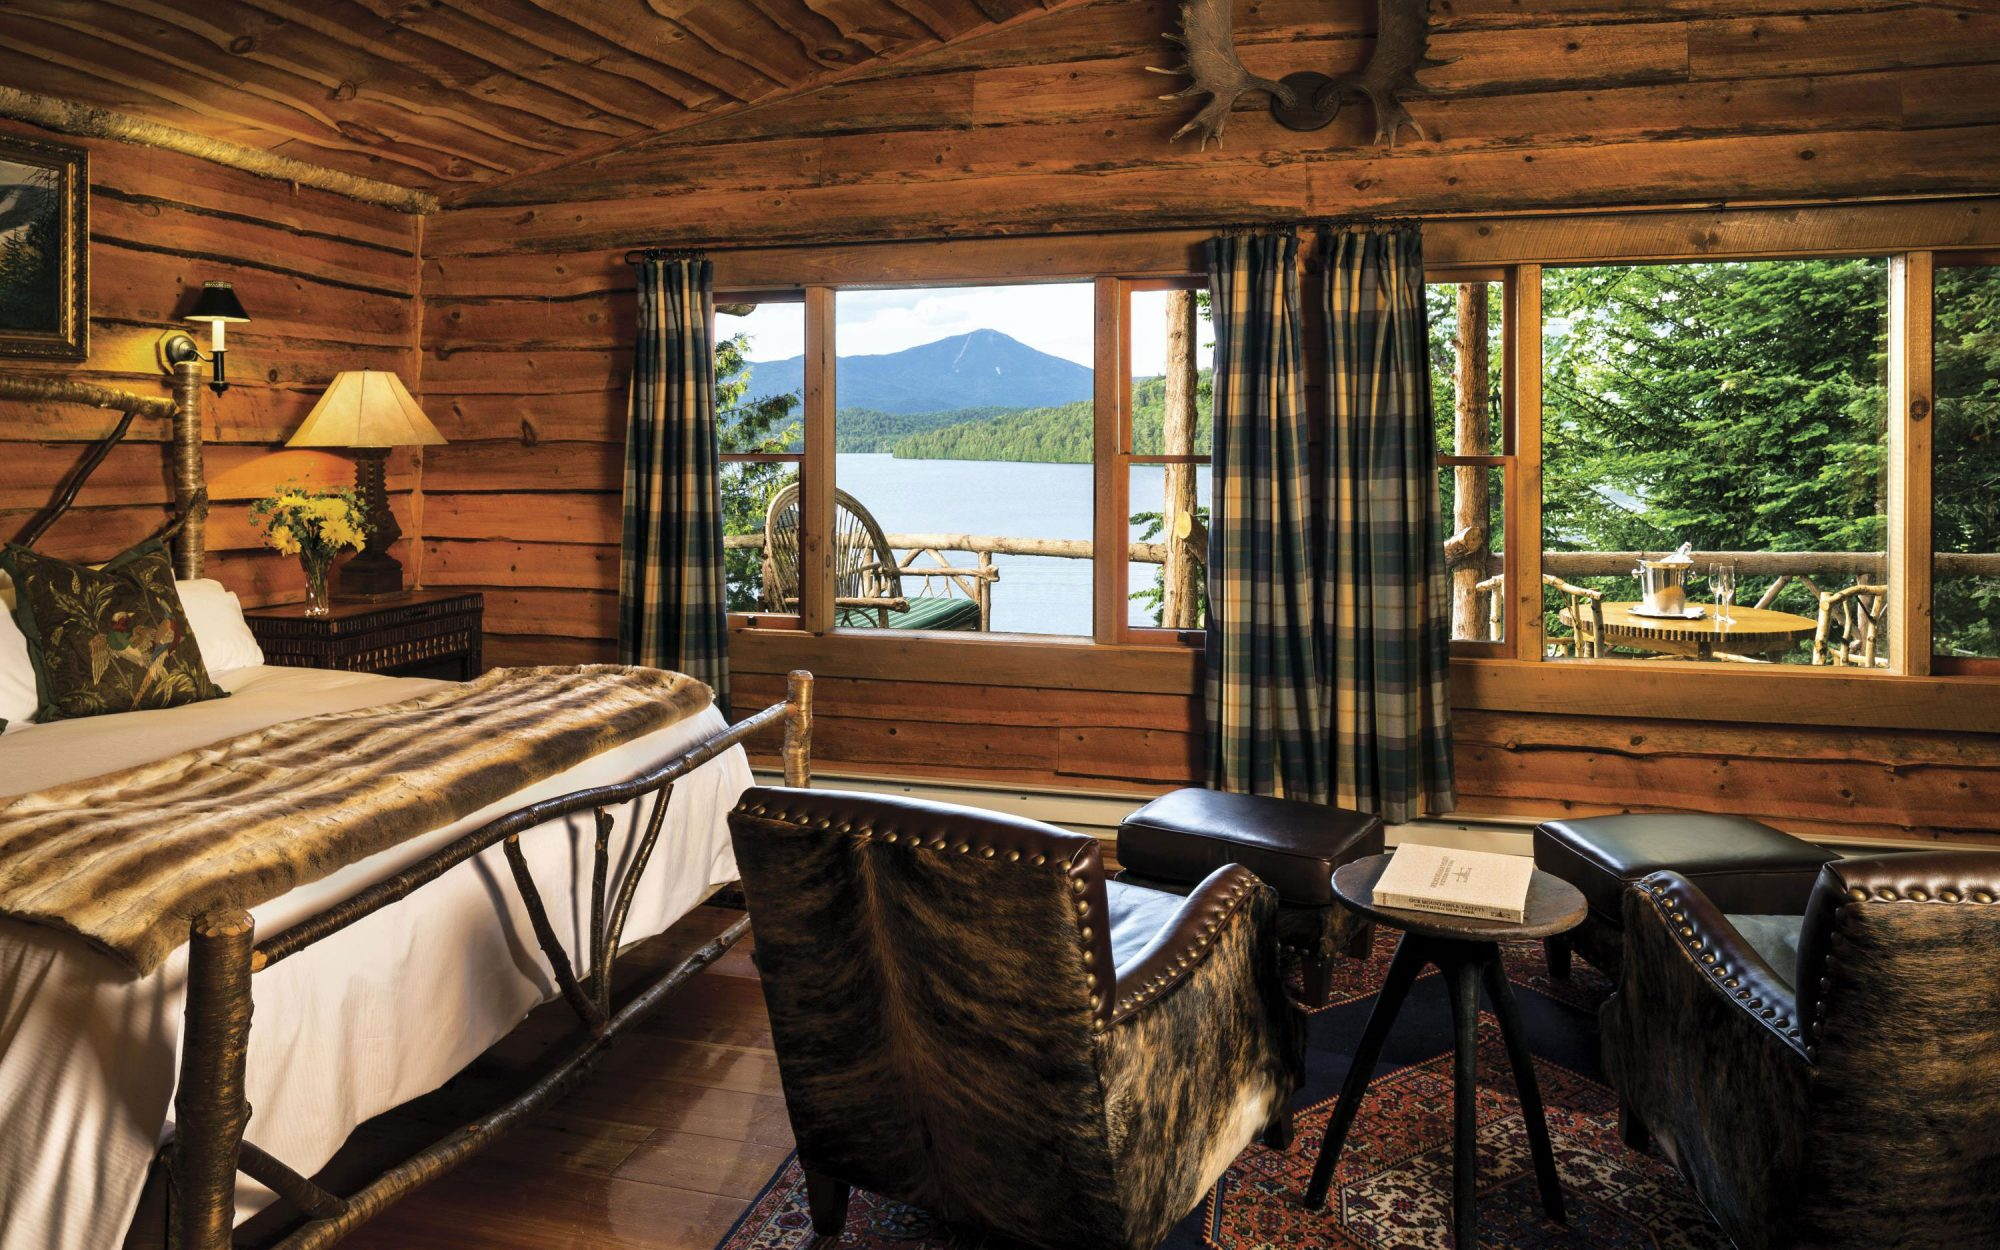 World's Top 50 Hotels: Lake Placid Lodge, Lake Placid New York